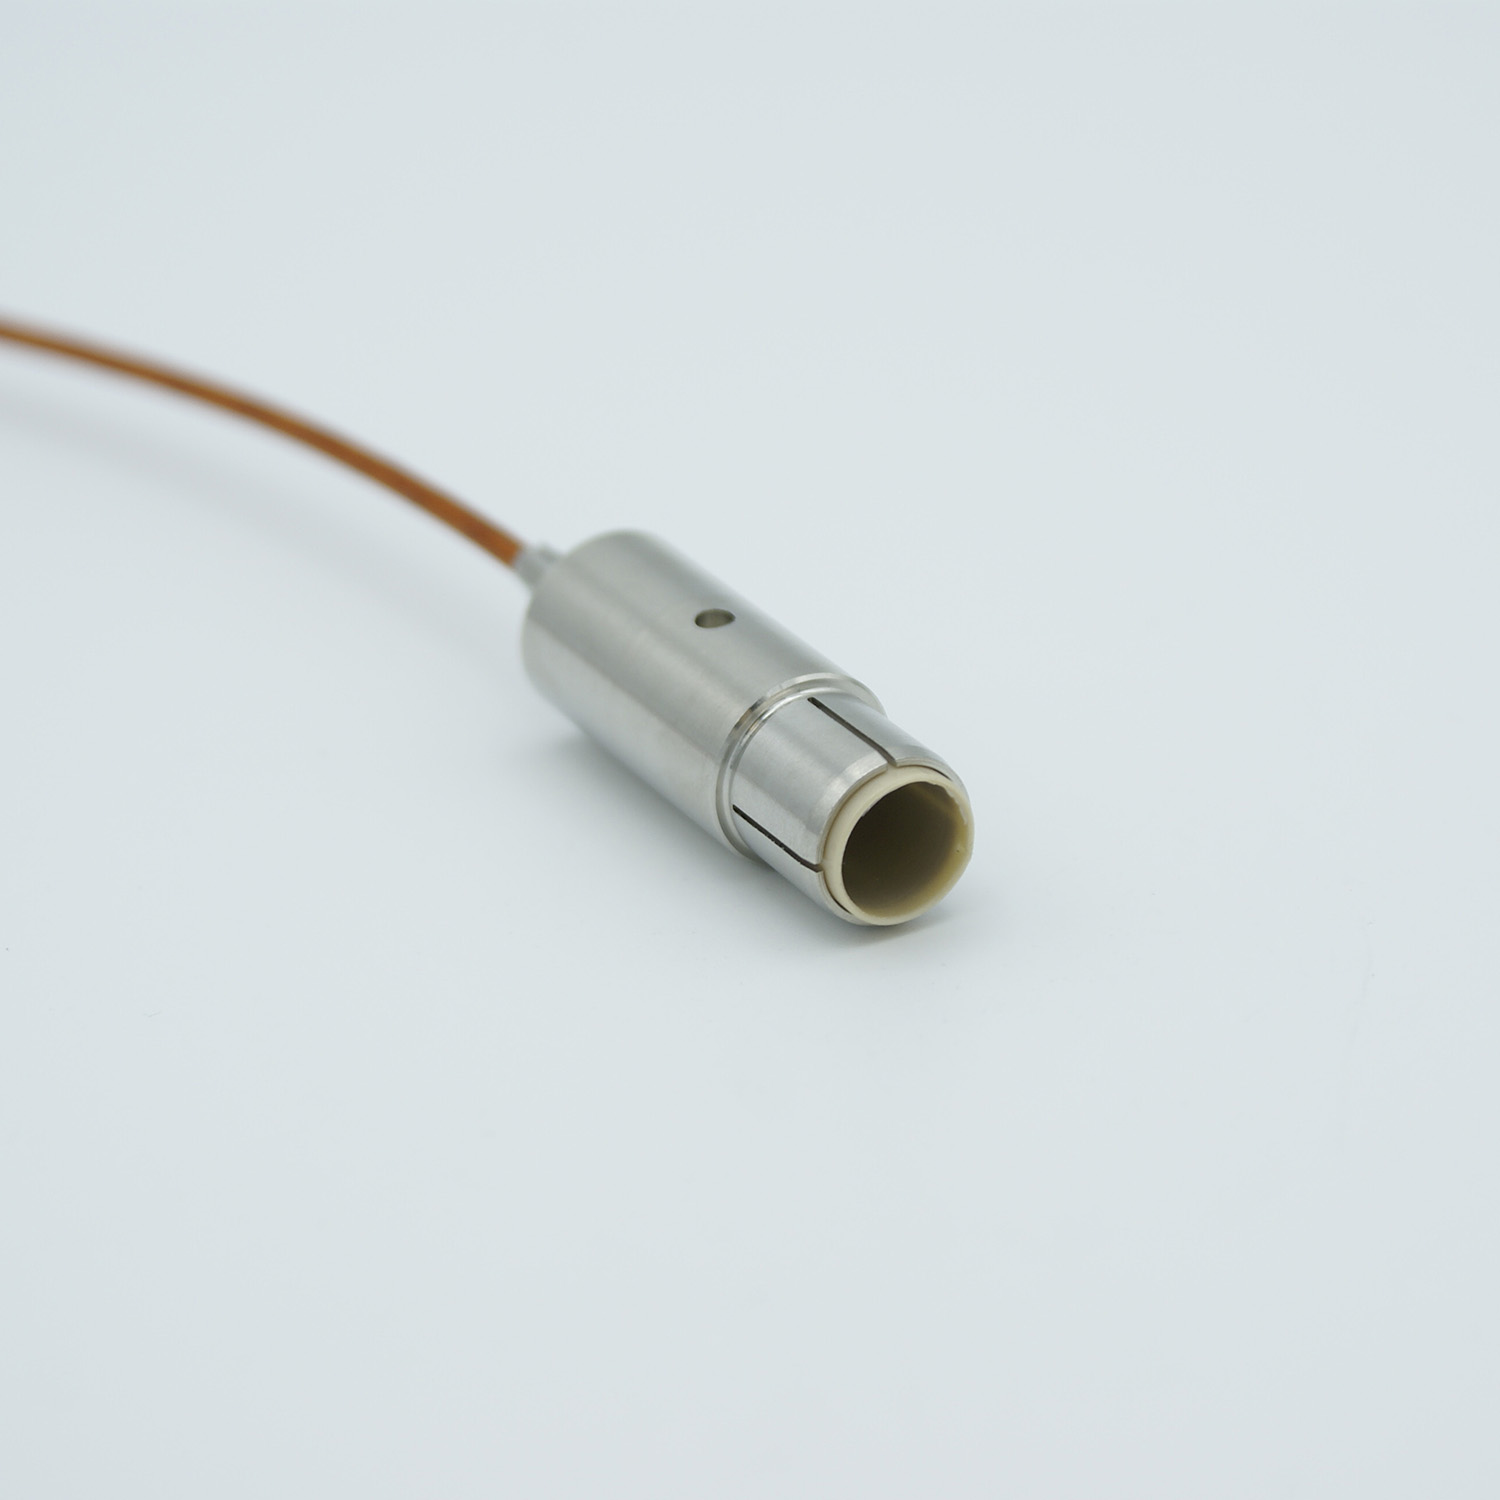 Grounded shield UHV connector with non-terminated Kapton insulated 39